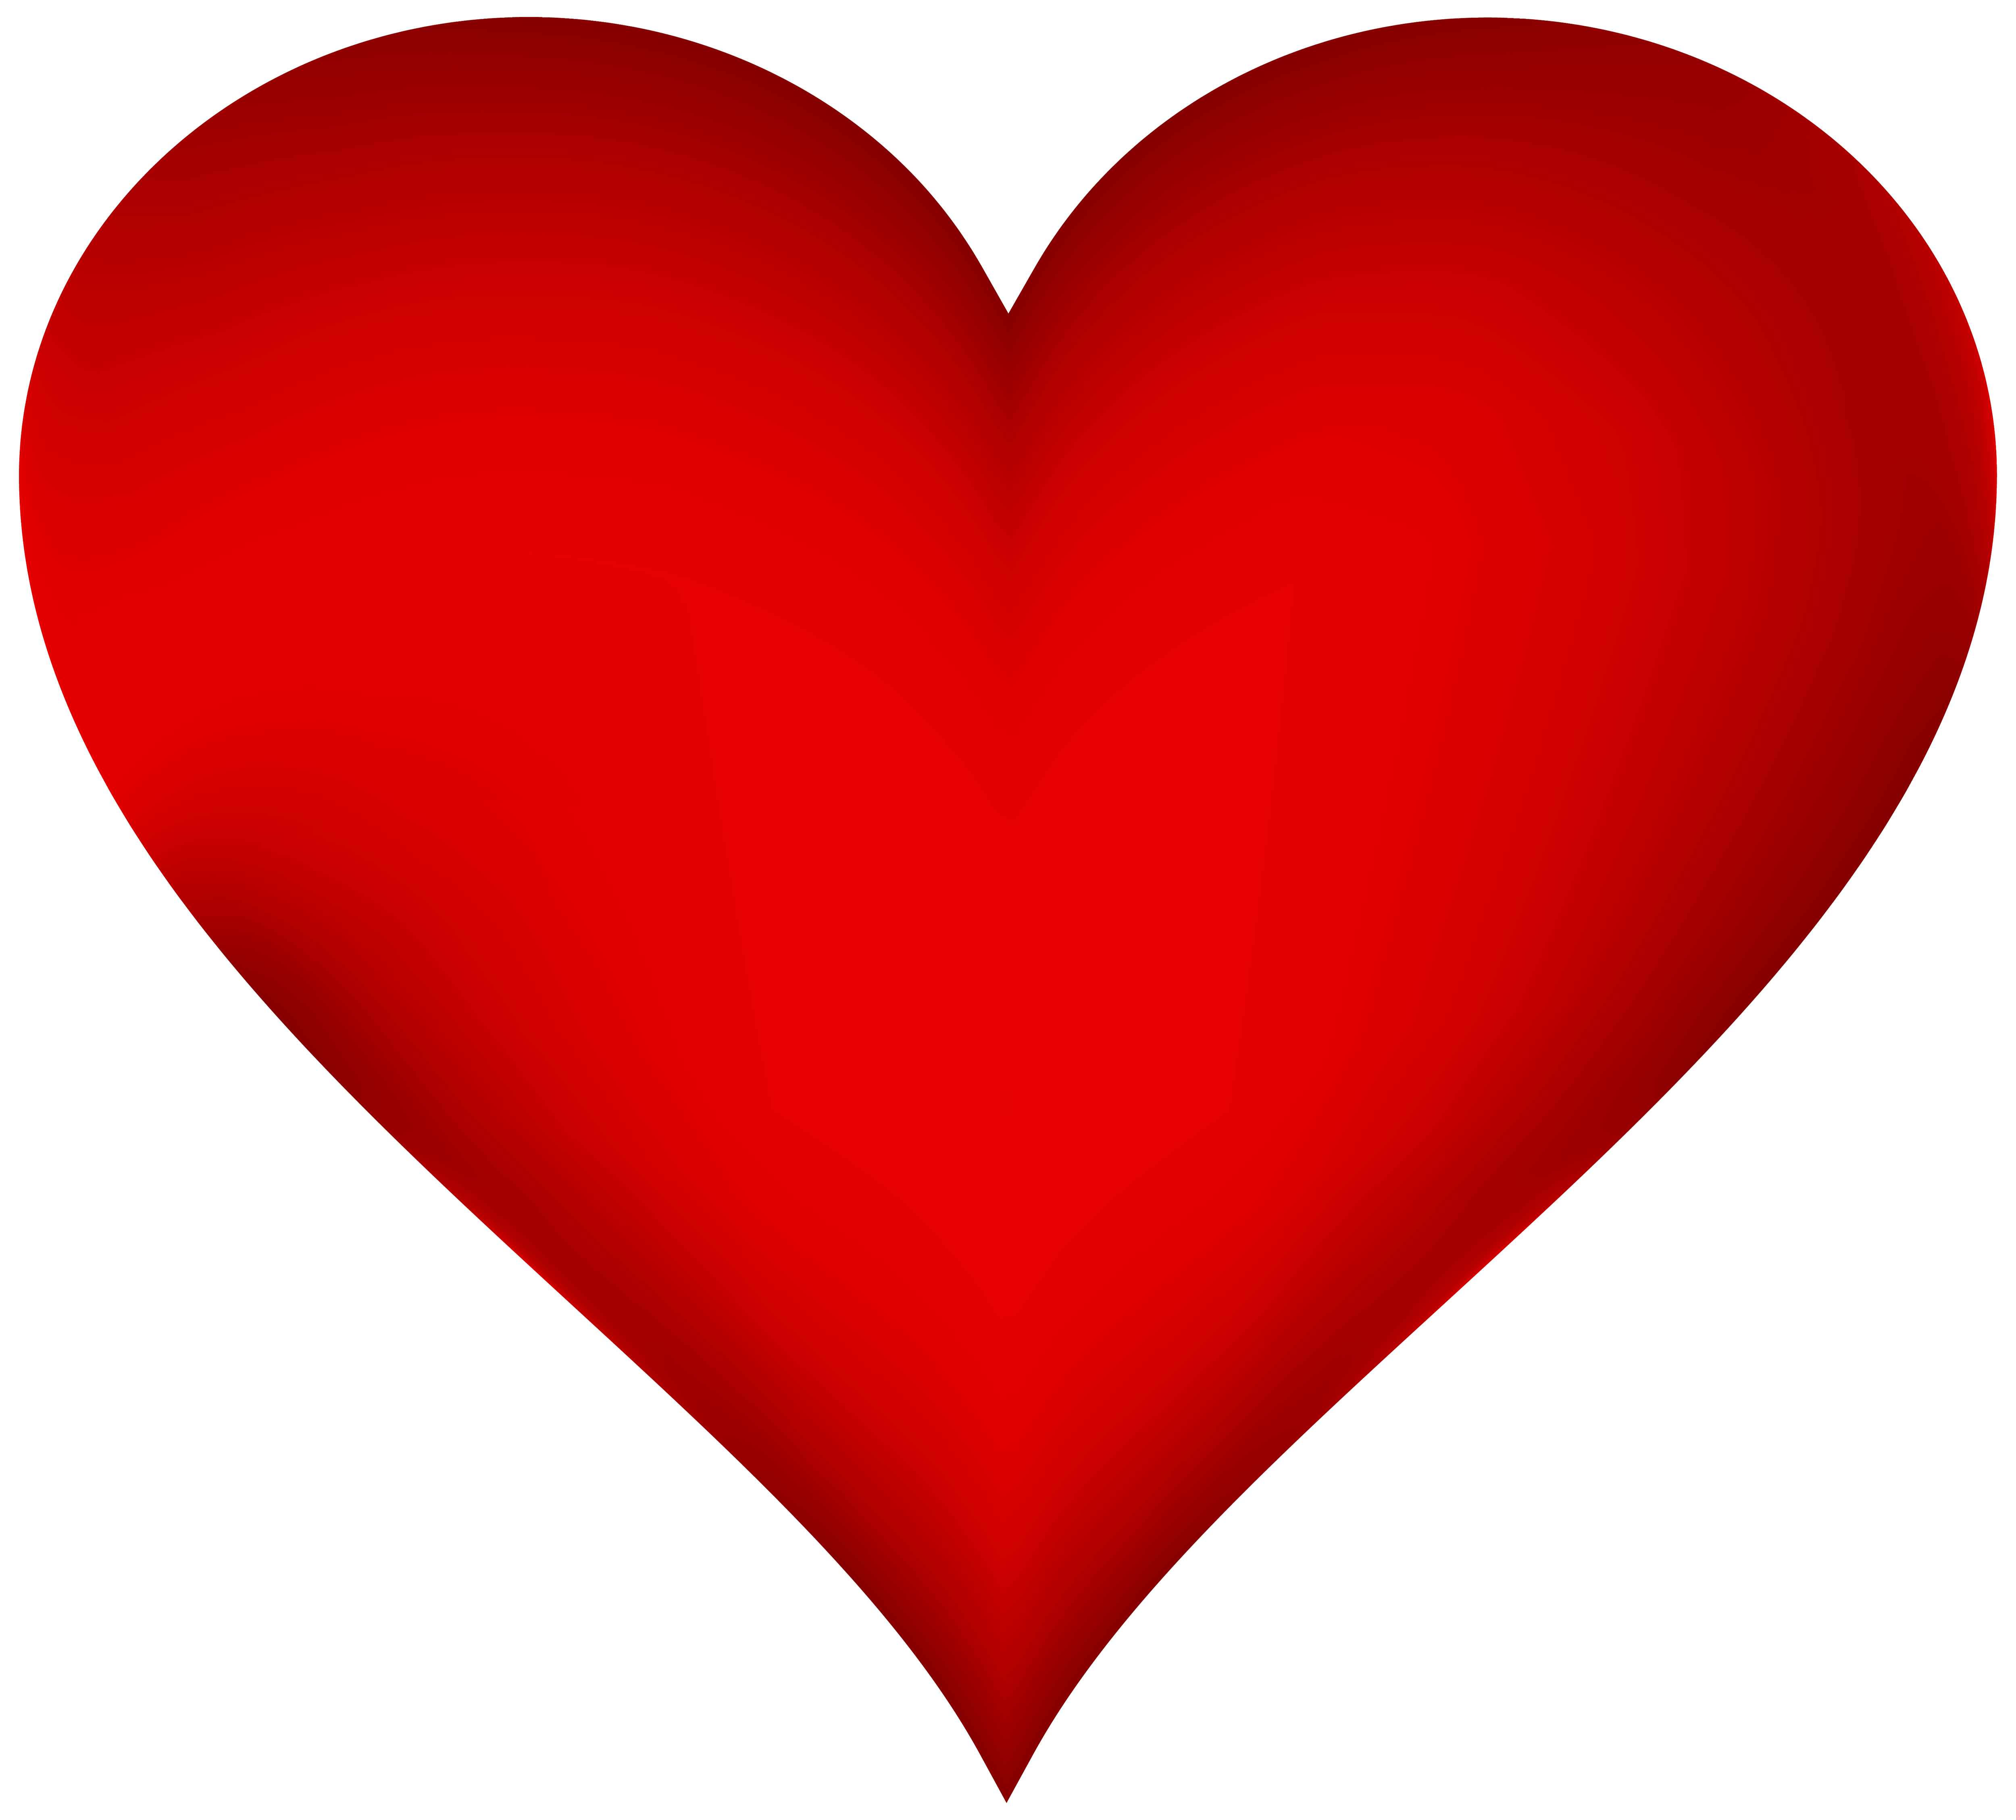 Heart Png & Free Heart.png Transparent Images #68 - PNGio